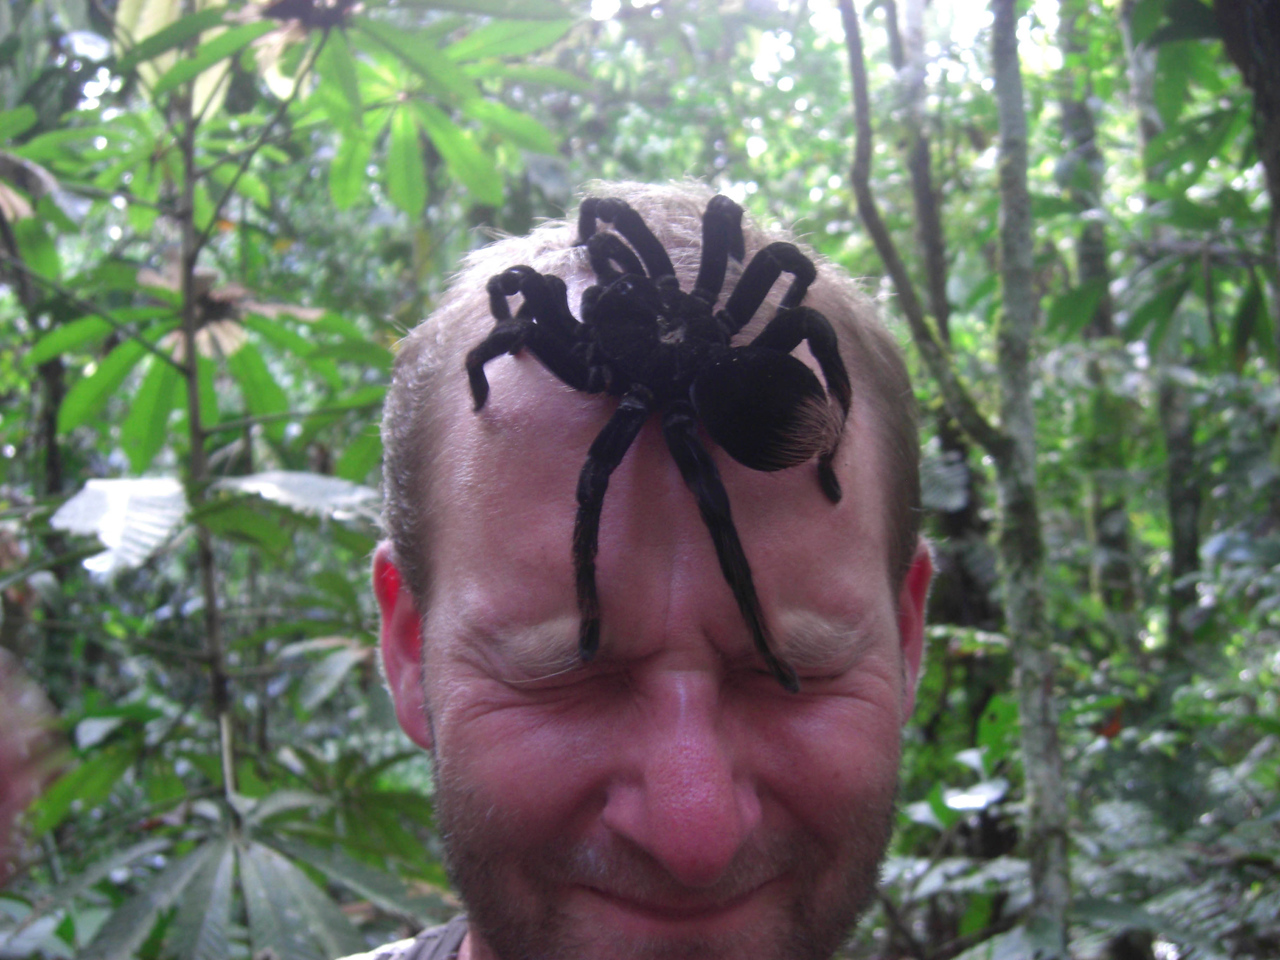 Tarantula on Patrick's face